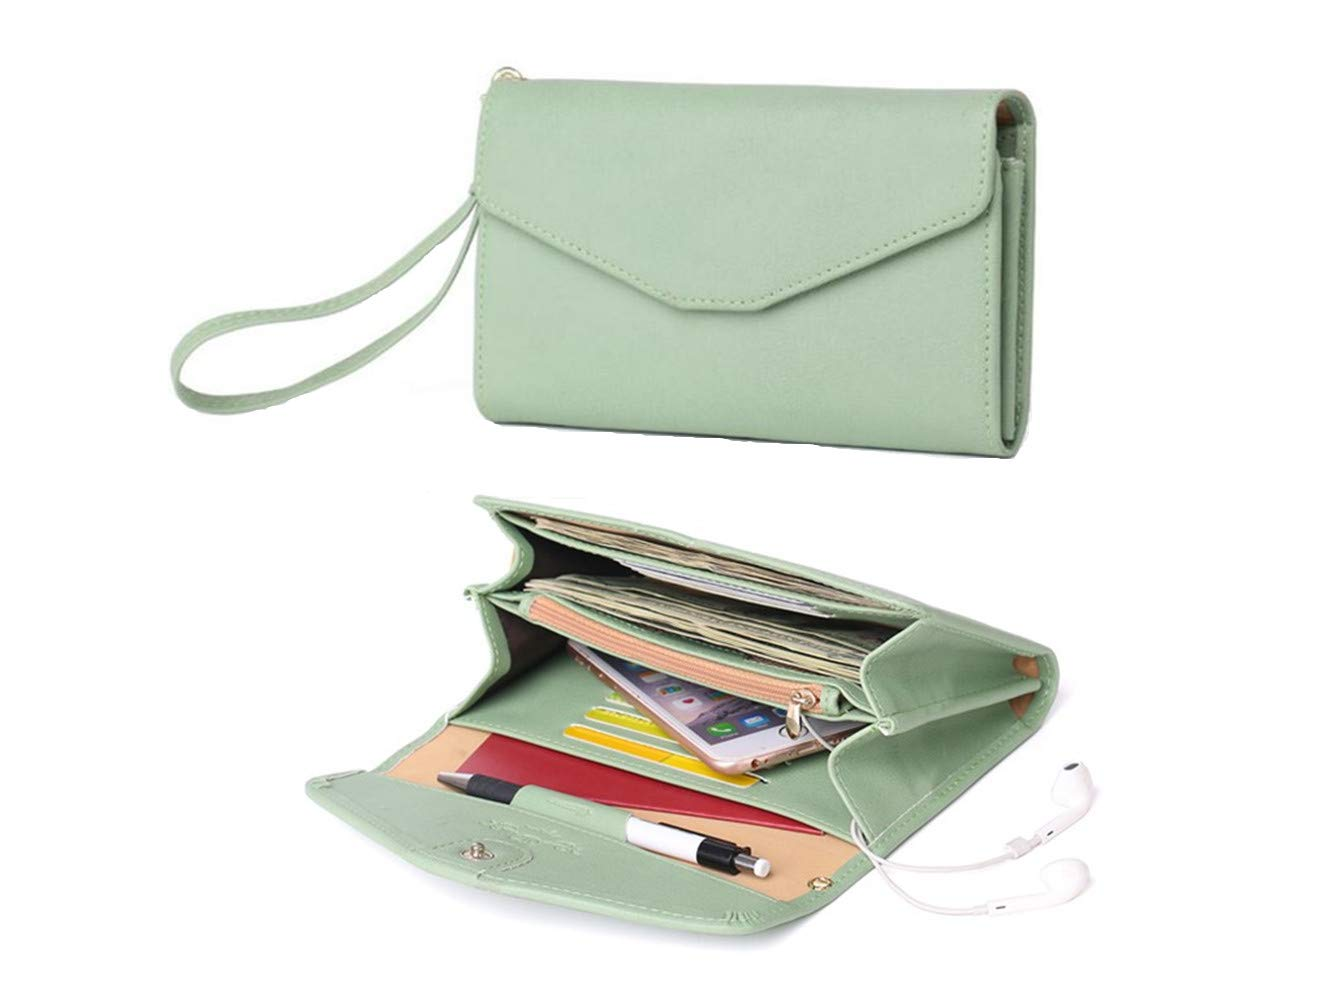 Zg Wristlets for Women, Cell Phone Clutch Wallet, Passport Wallet, All In One Purse Extra Capacity by Zg gift (Image #1)